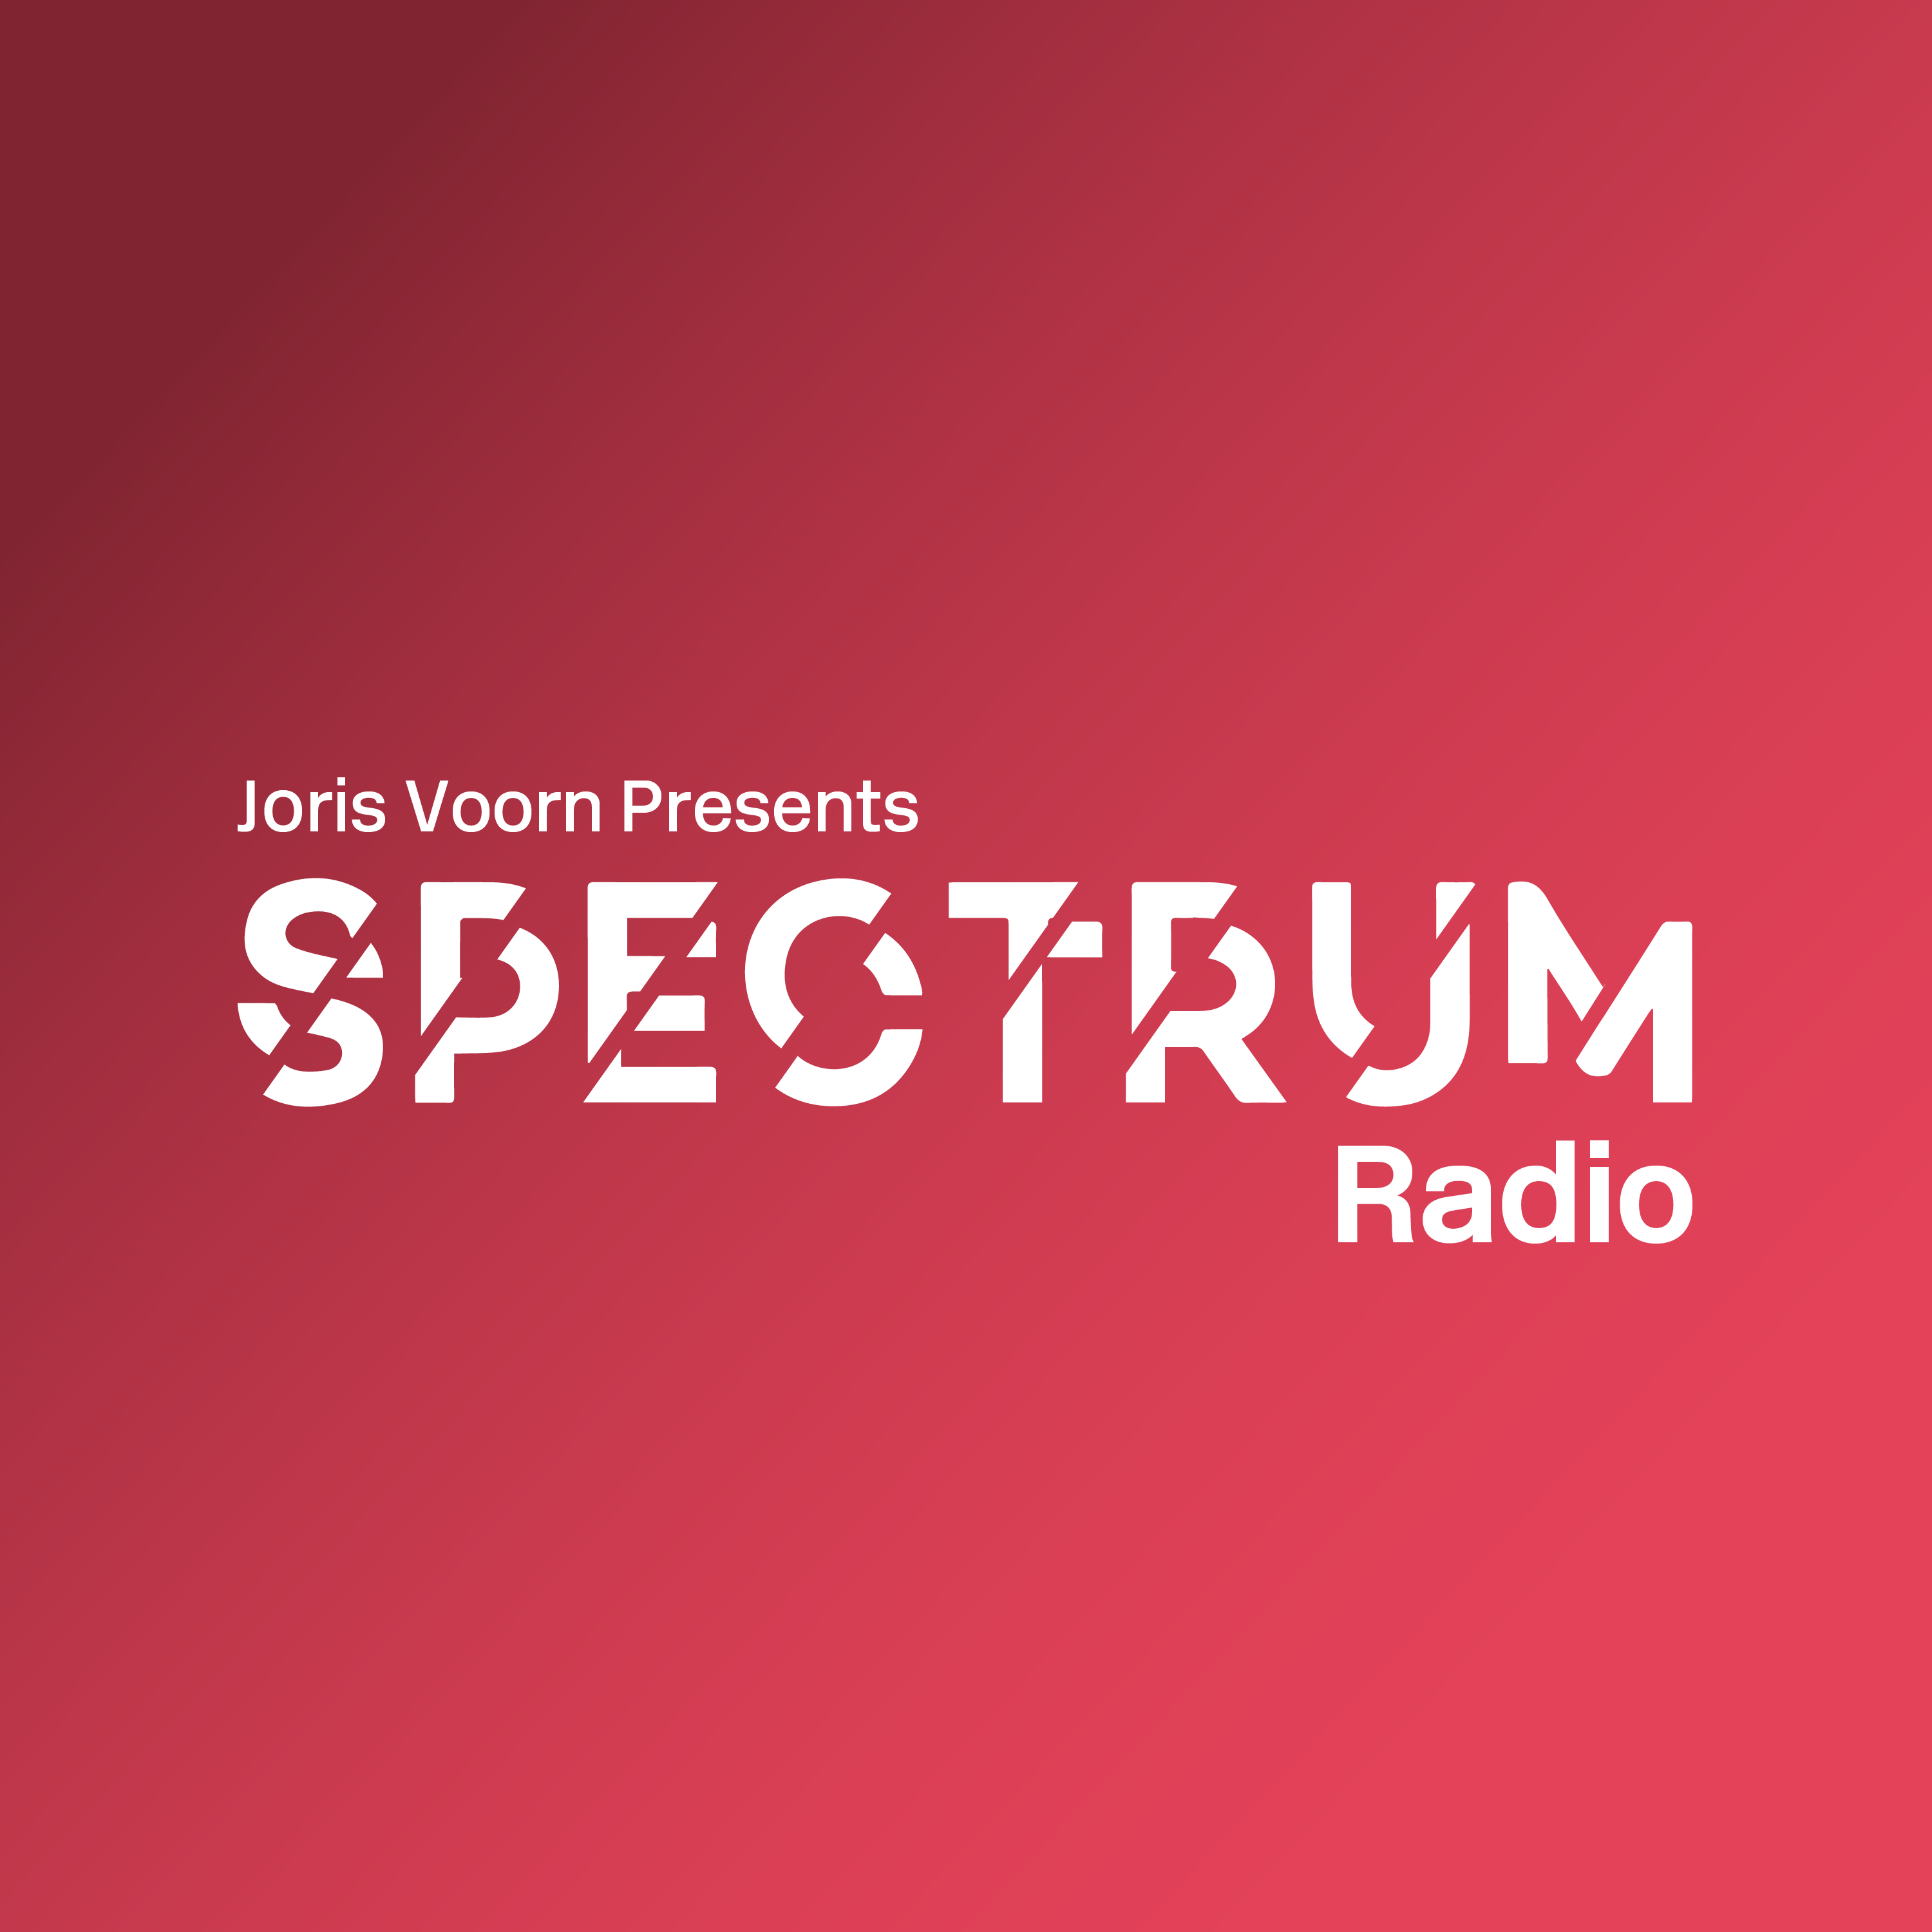 Delta Podcasts - Spectrum Radio by Joris Voorn (03.12.2017)